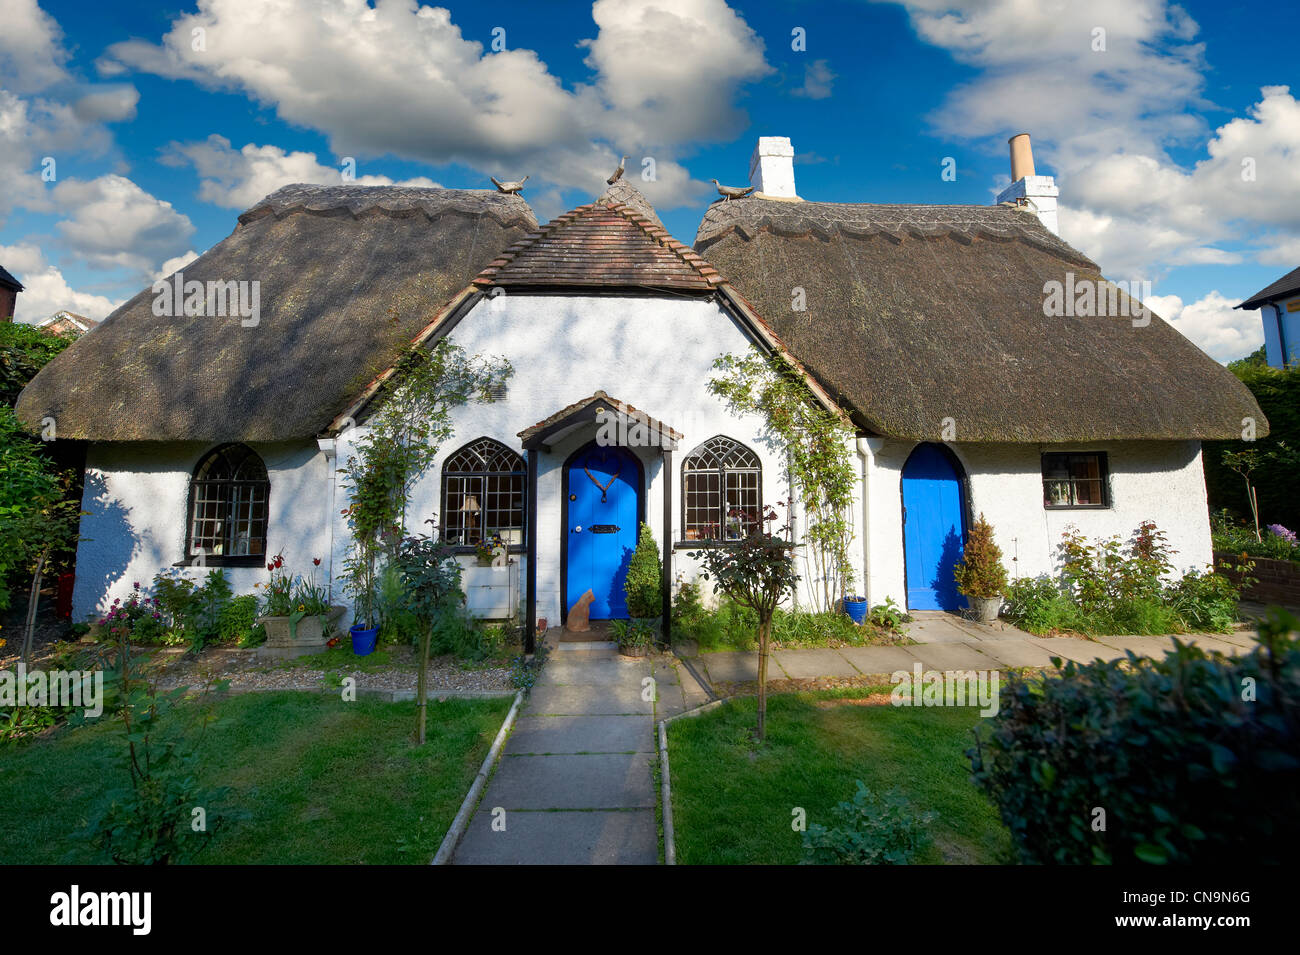 Thatched cottage in Moreton Road Buckingham, Bucks - Stock Image